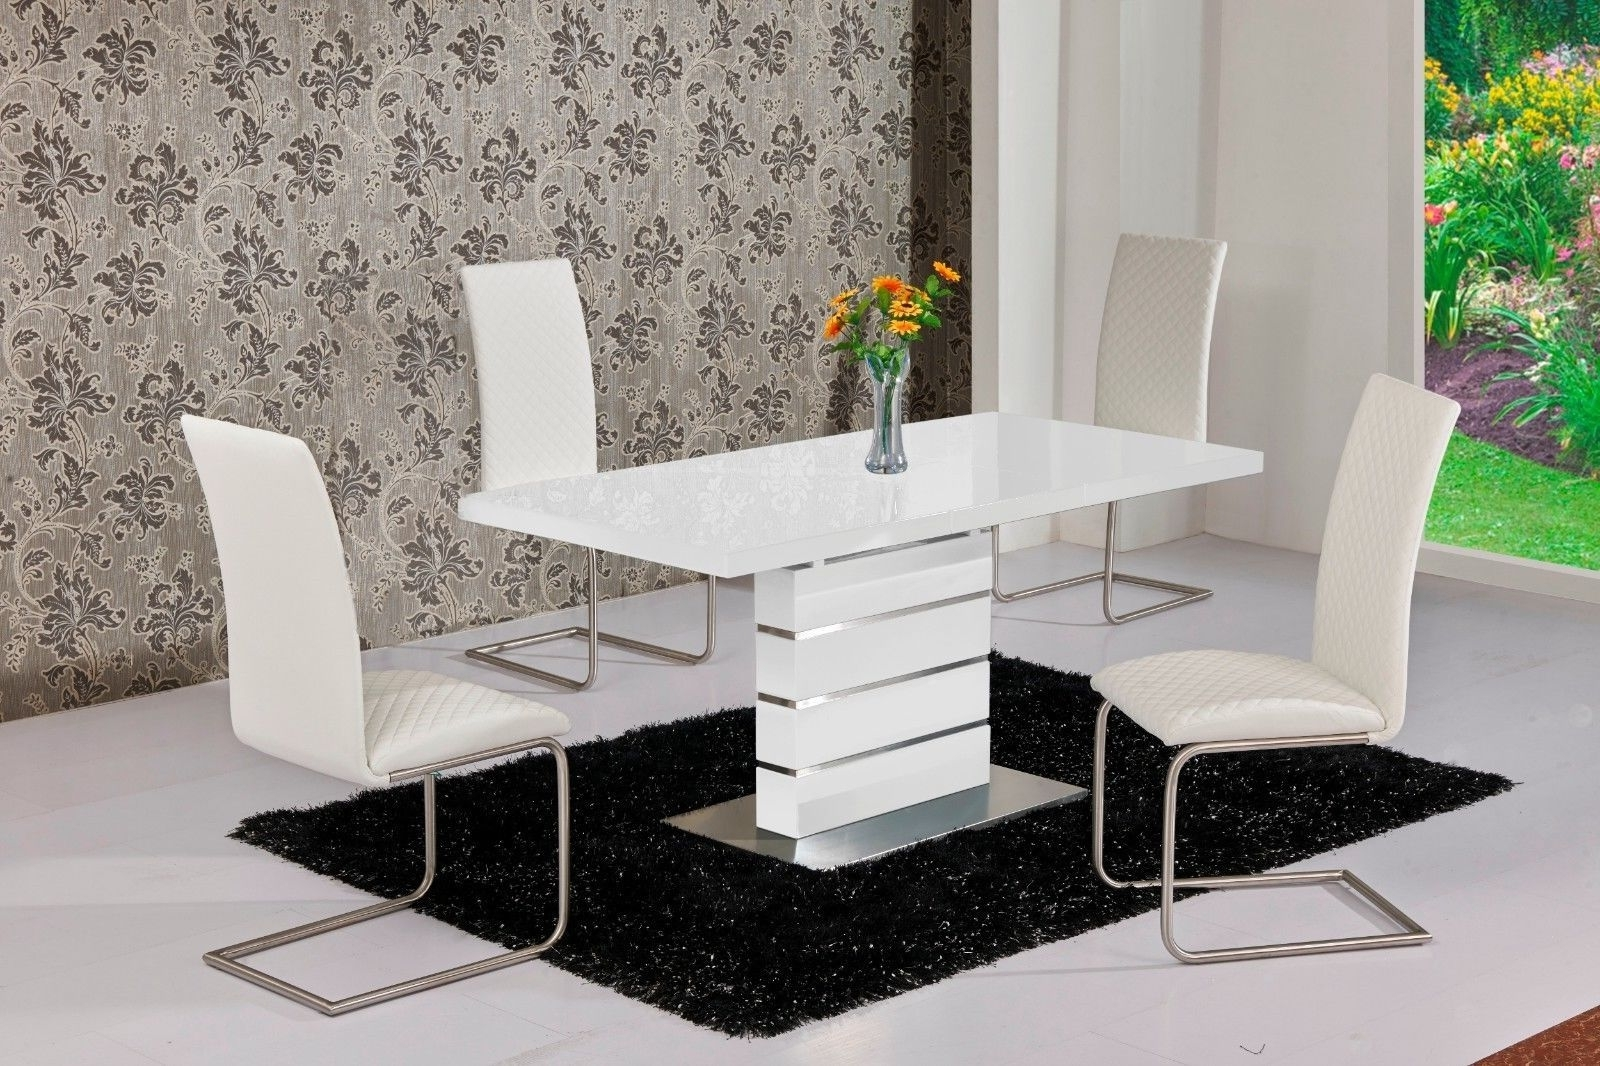 2017 Extending Dining Table And Chairs Inside Mace High Gloss Extending 120 160 Dining Table & Chair Set – White (Gallery 2 of 25)